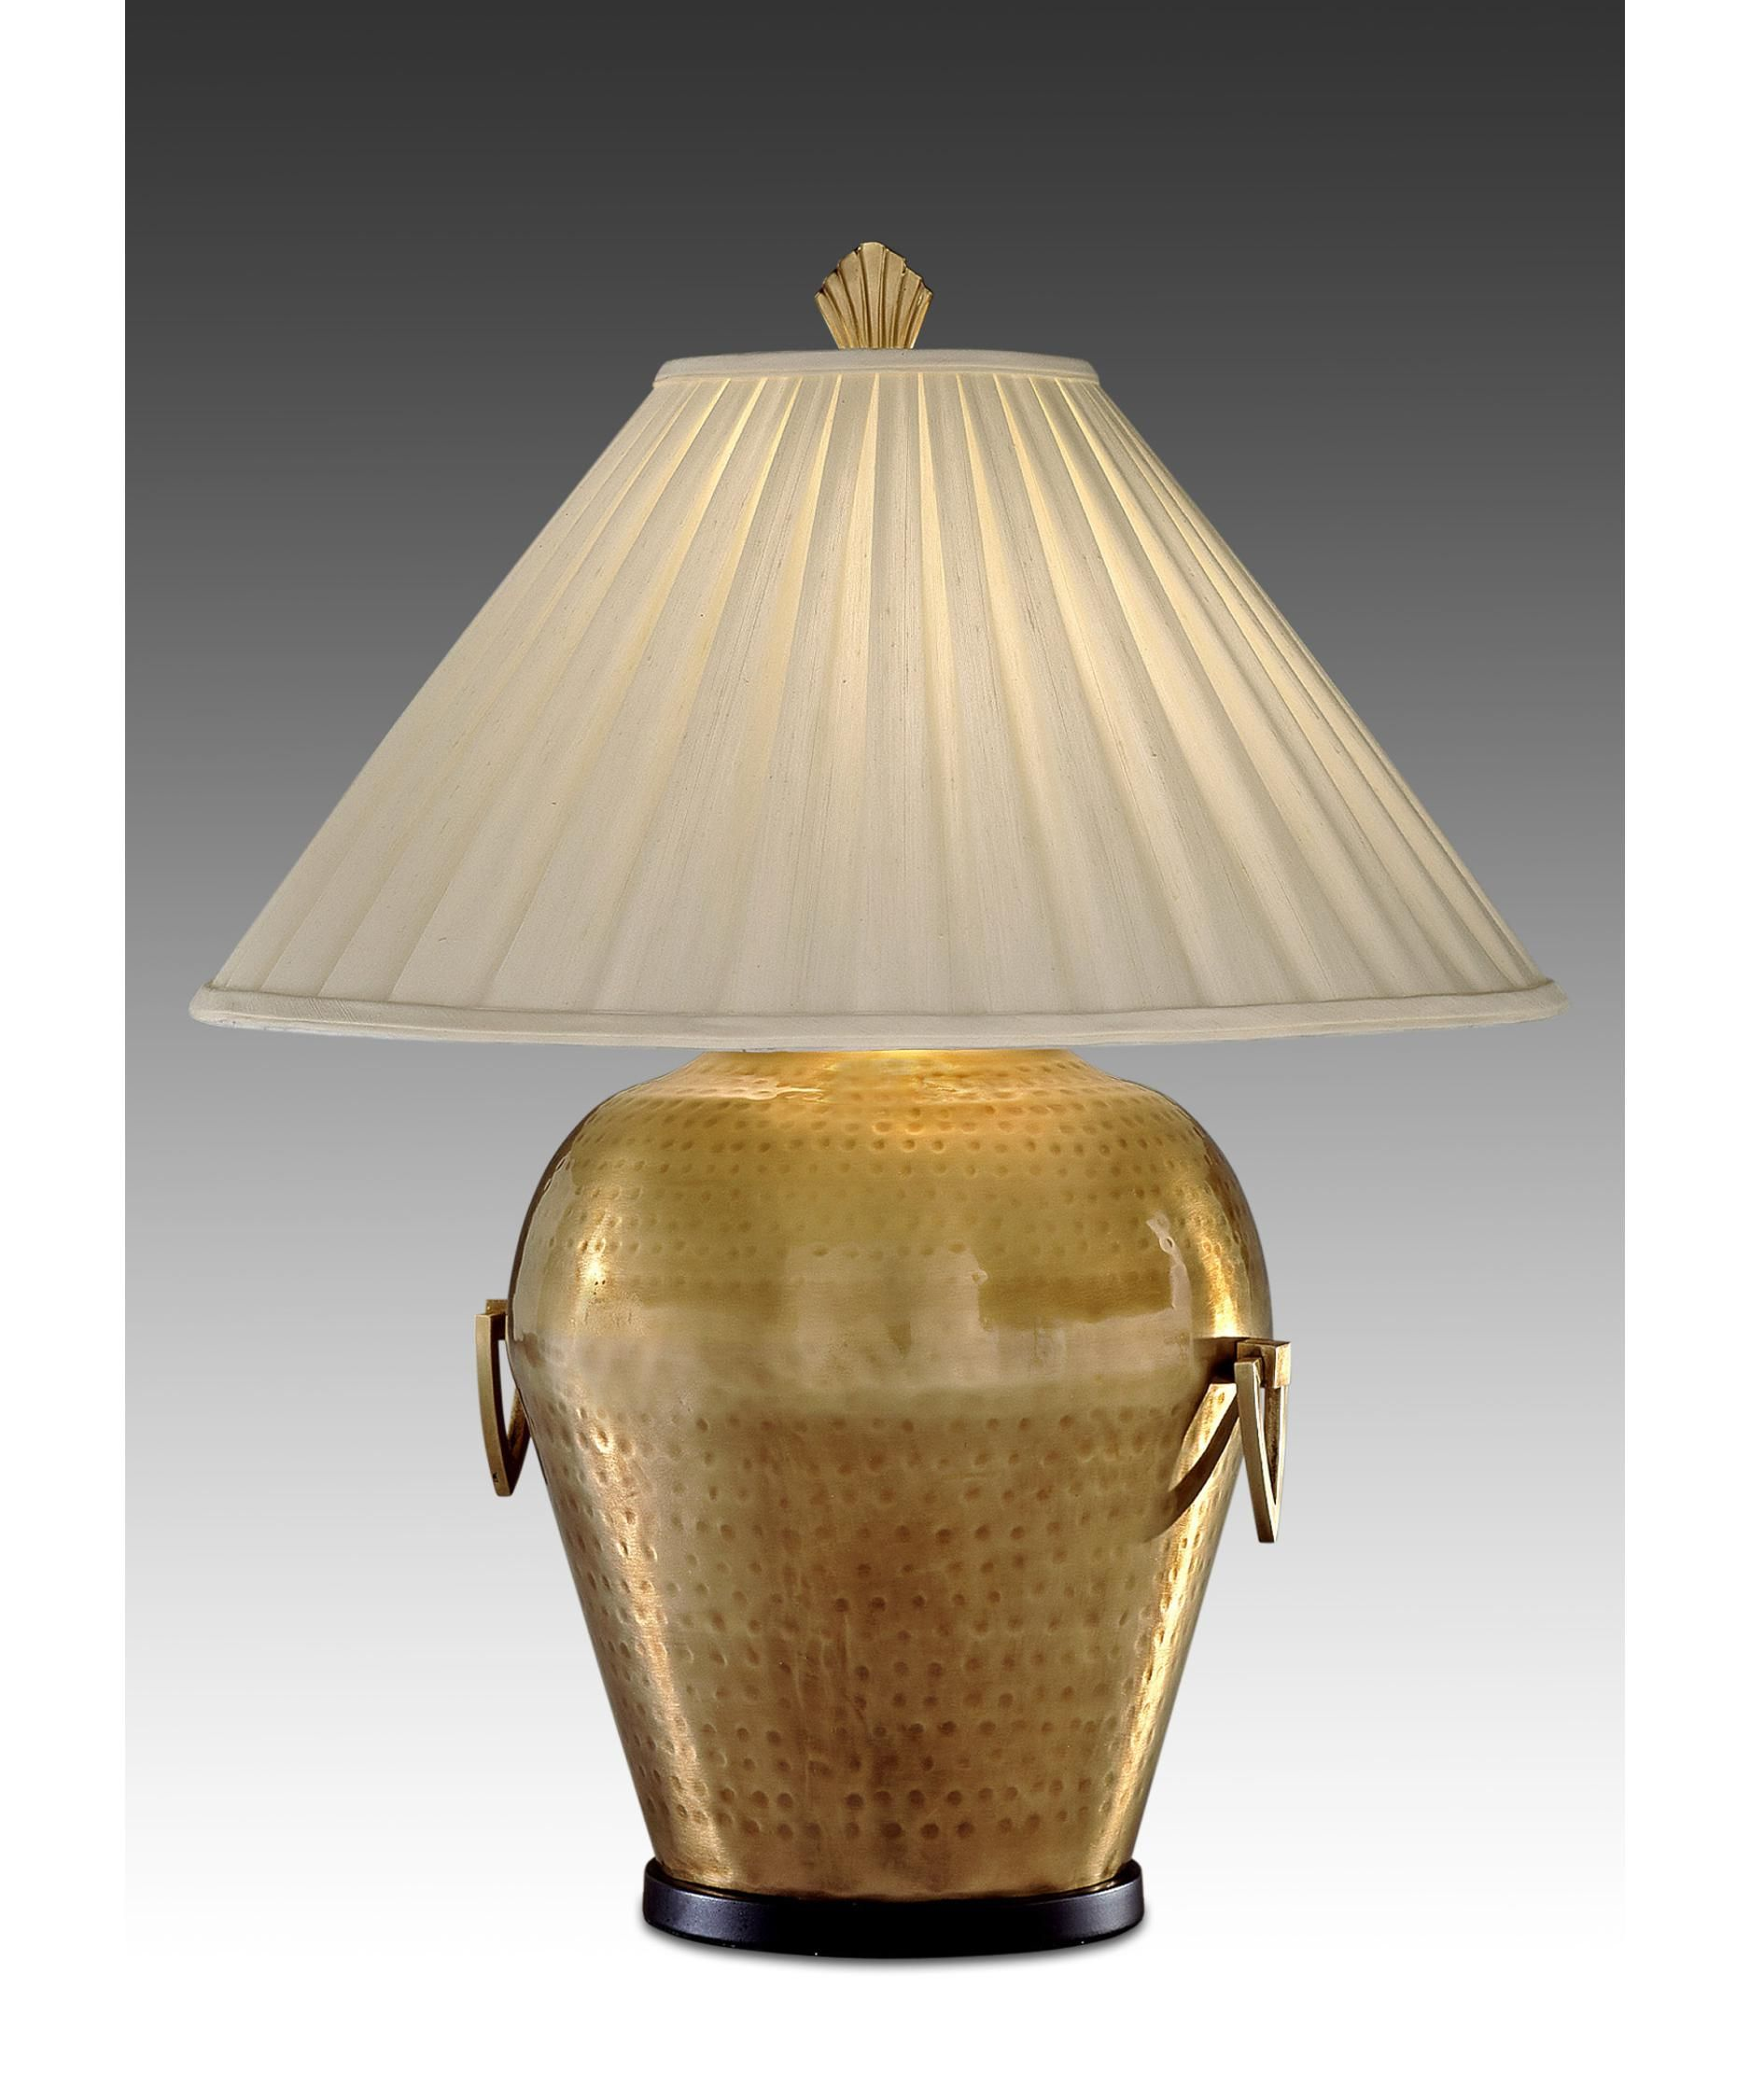 remington lamp table lamp in hammered brass antique capitol lighting